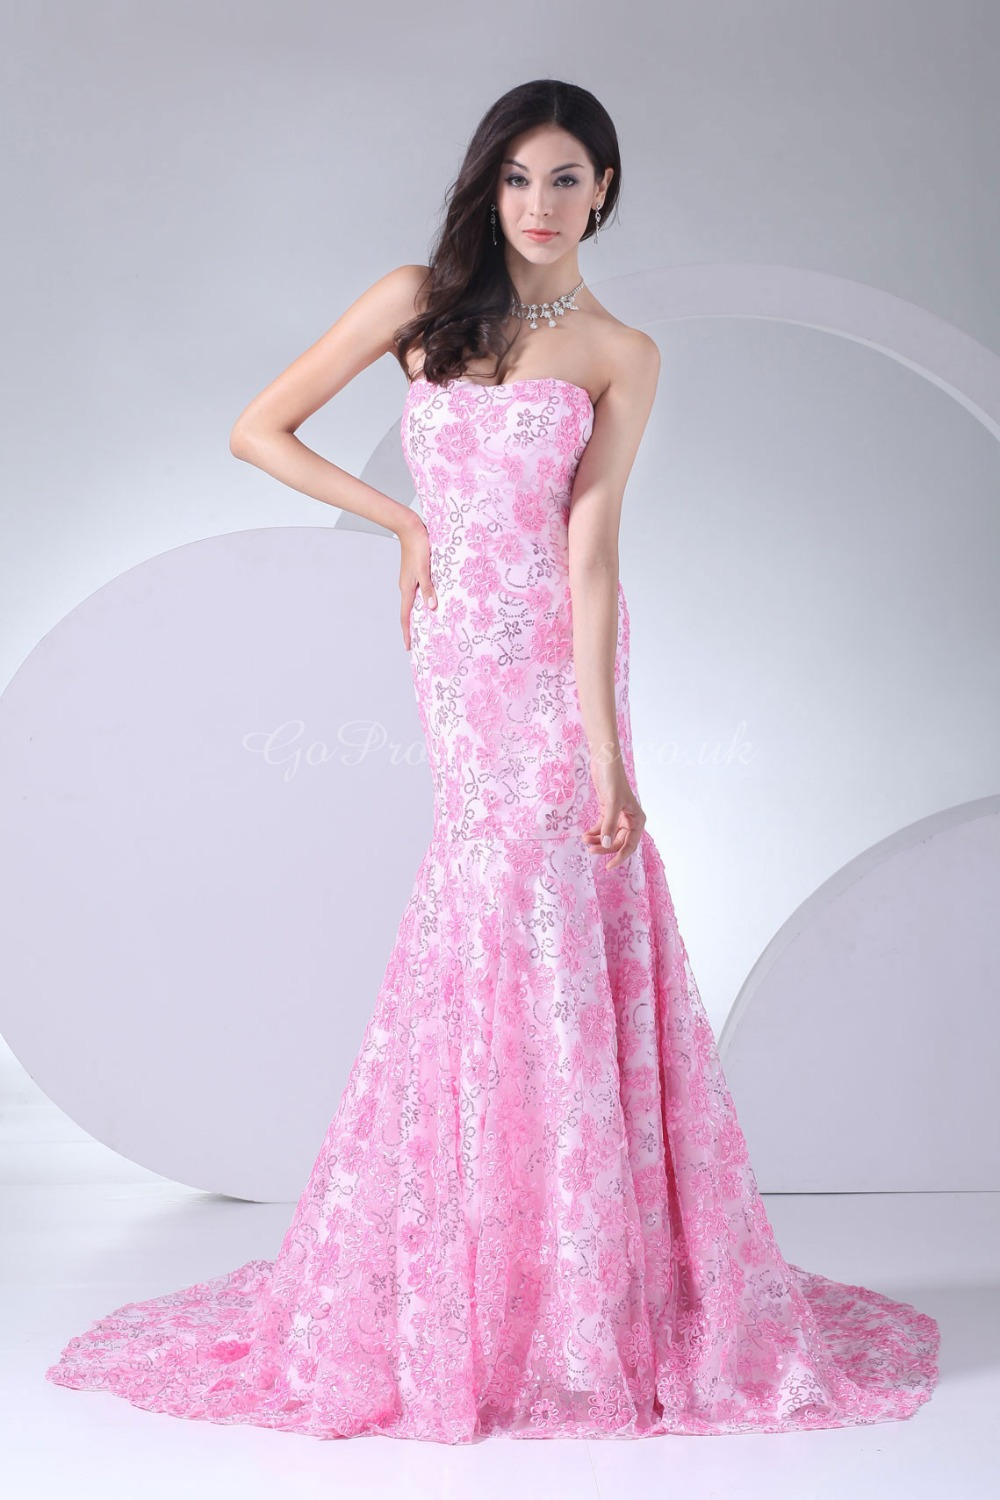 Prom Dress Stores In Zona Rosa 97